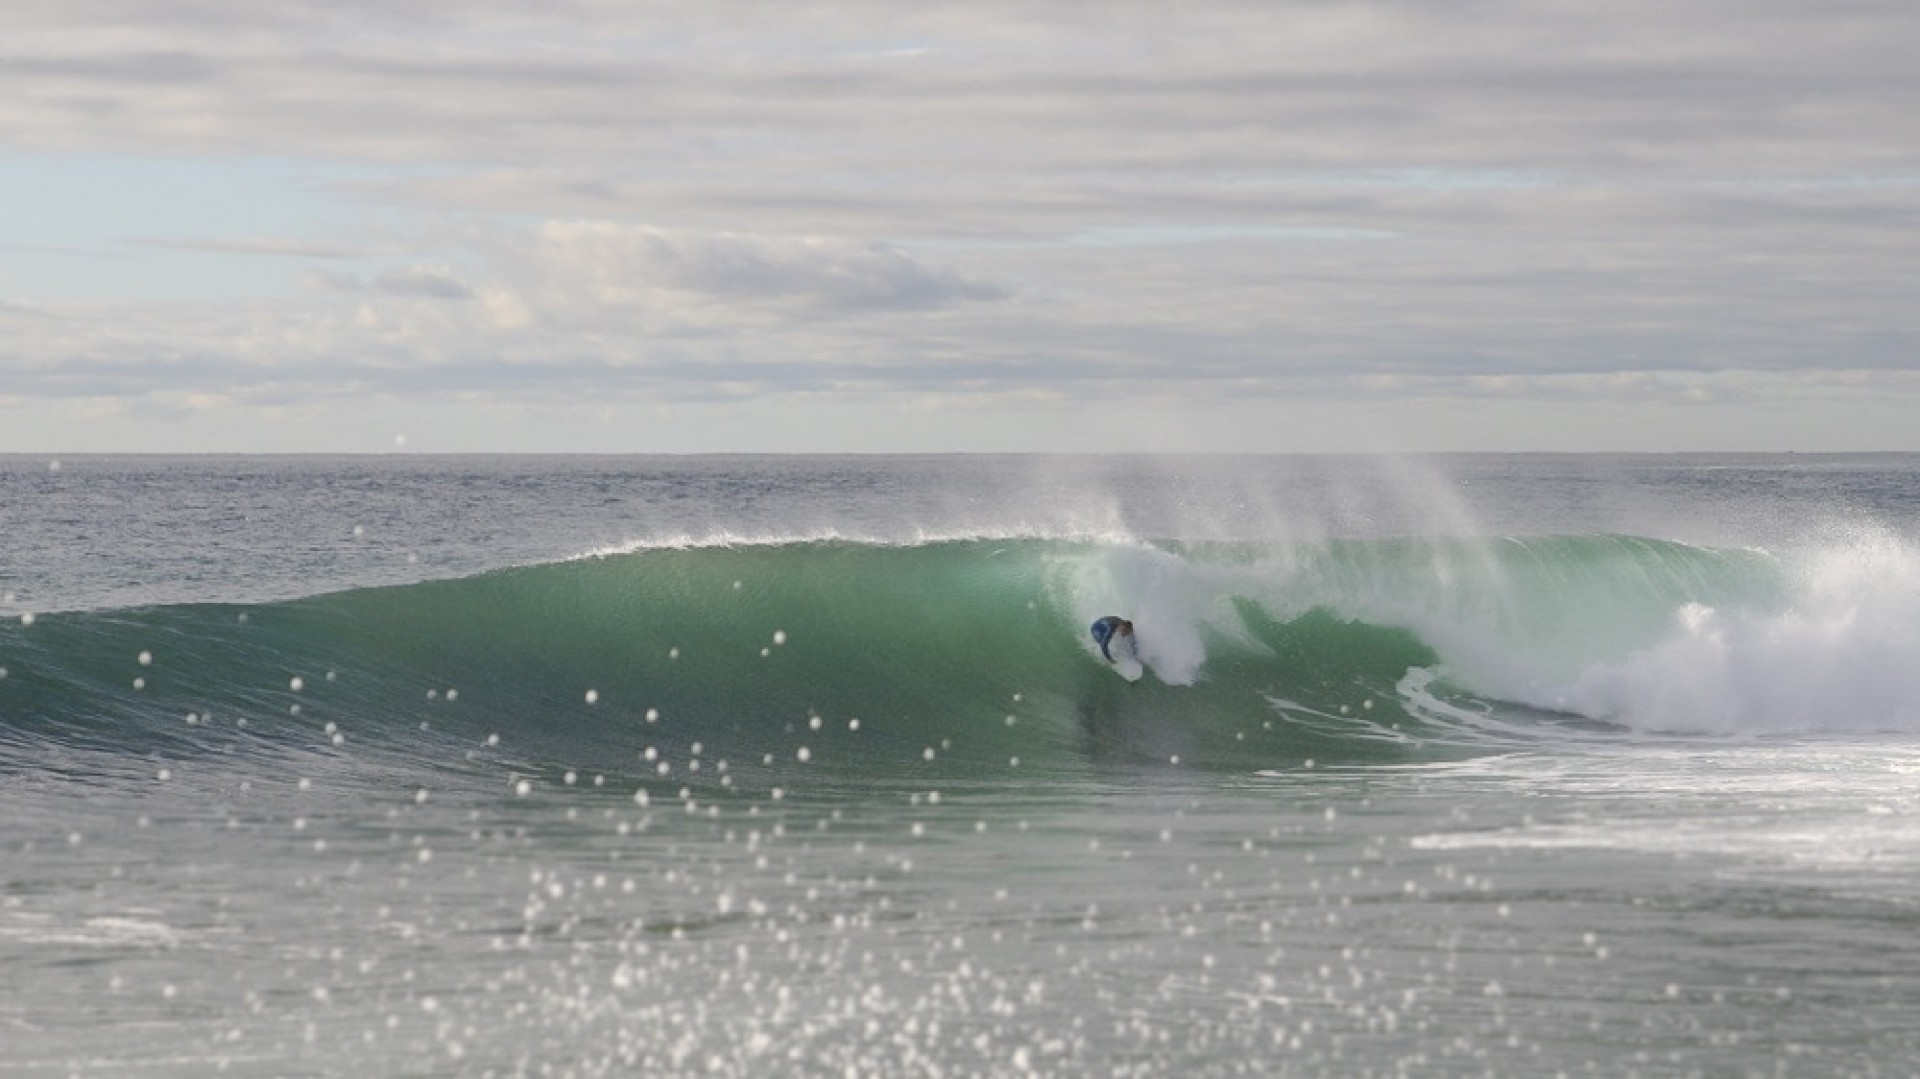 wesl's photo of Varazze